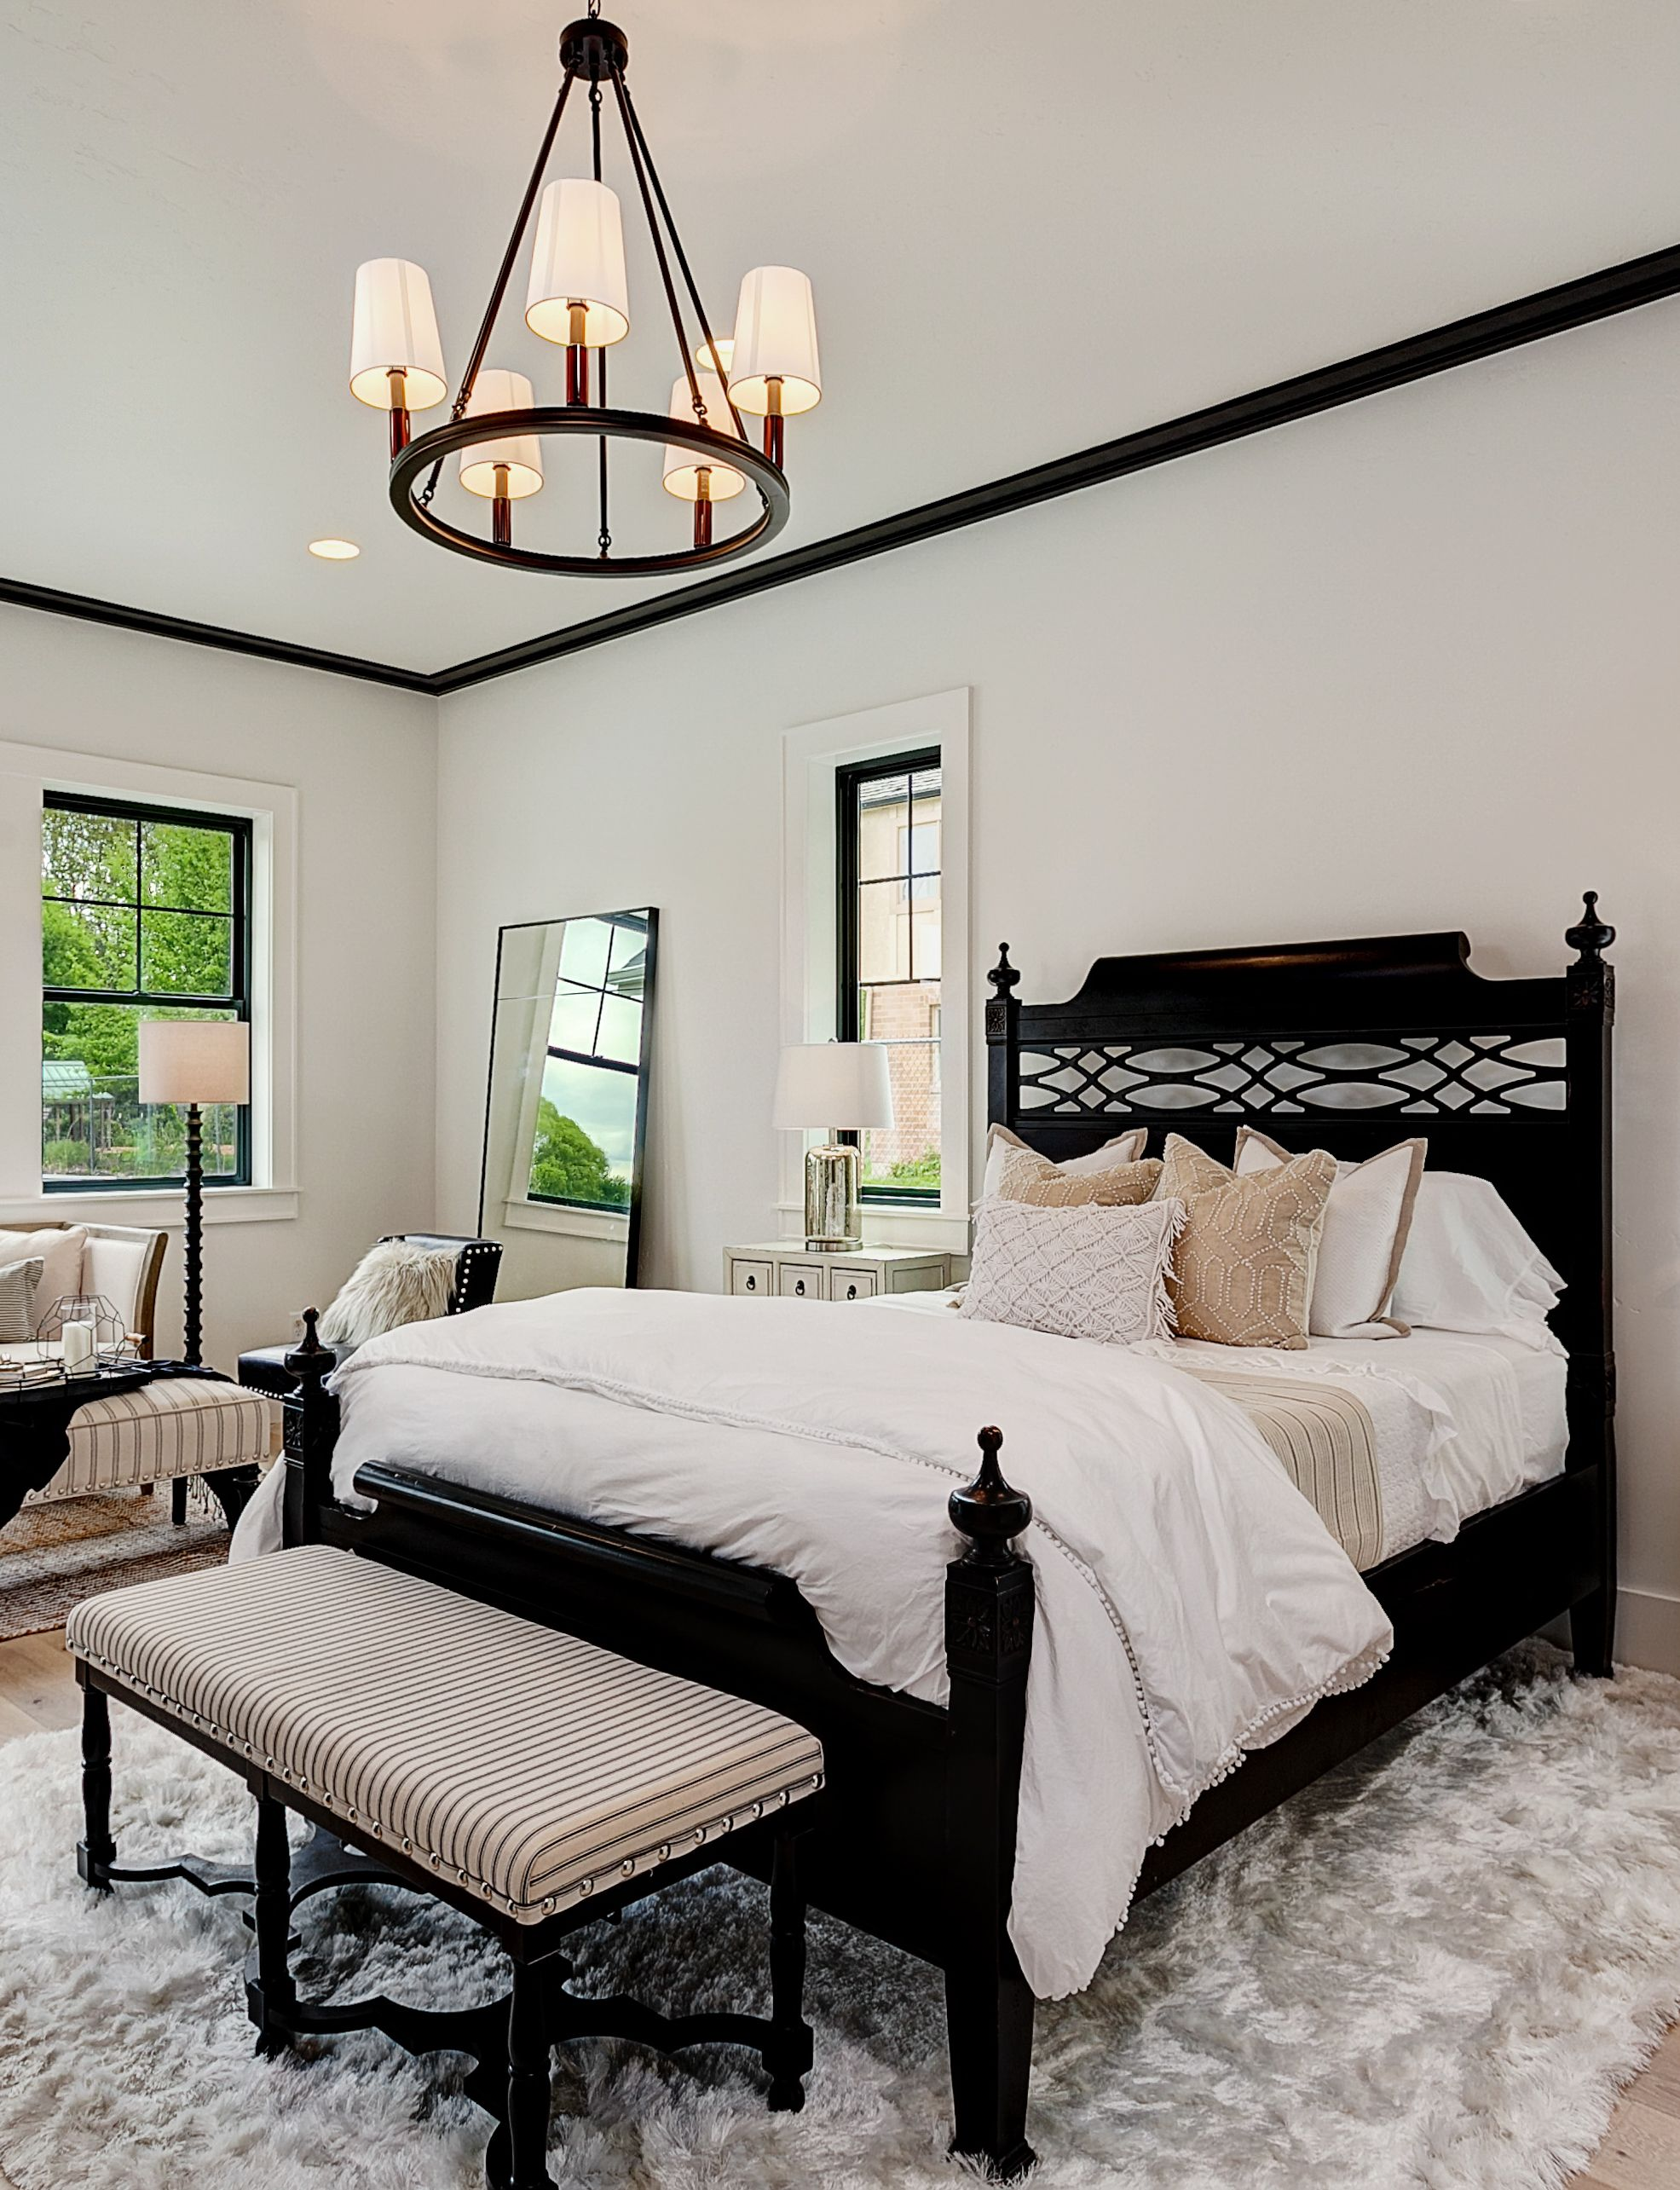 In this master bedroom, your eye is immediately drawn to